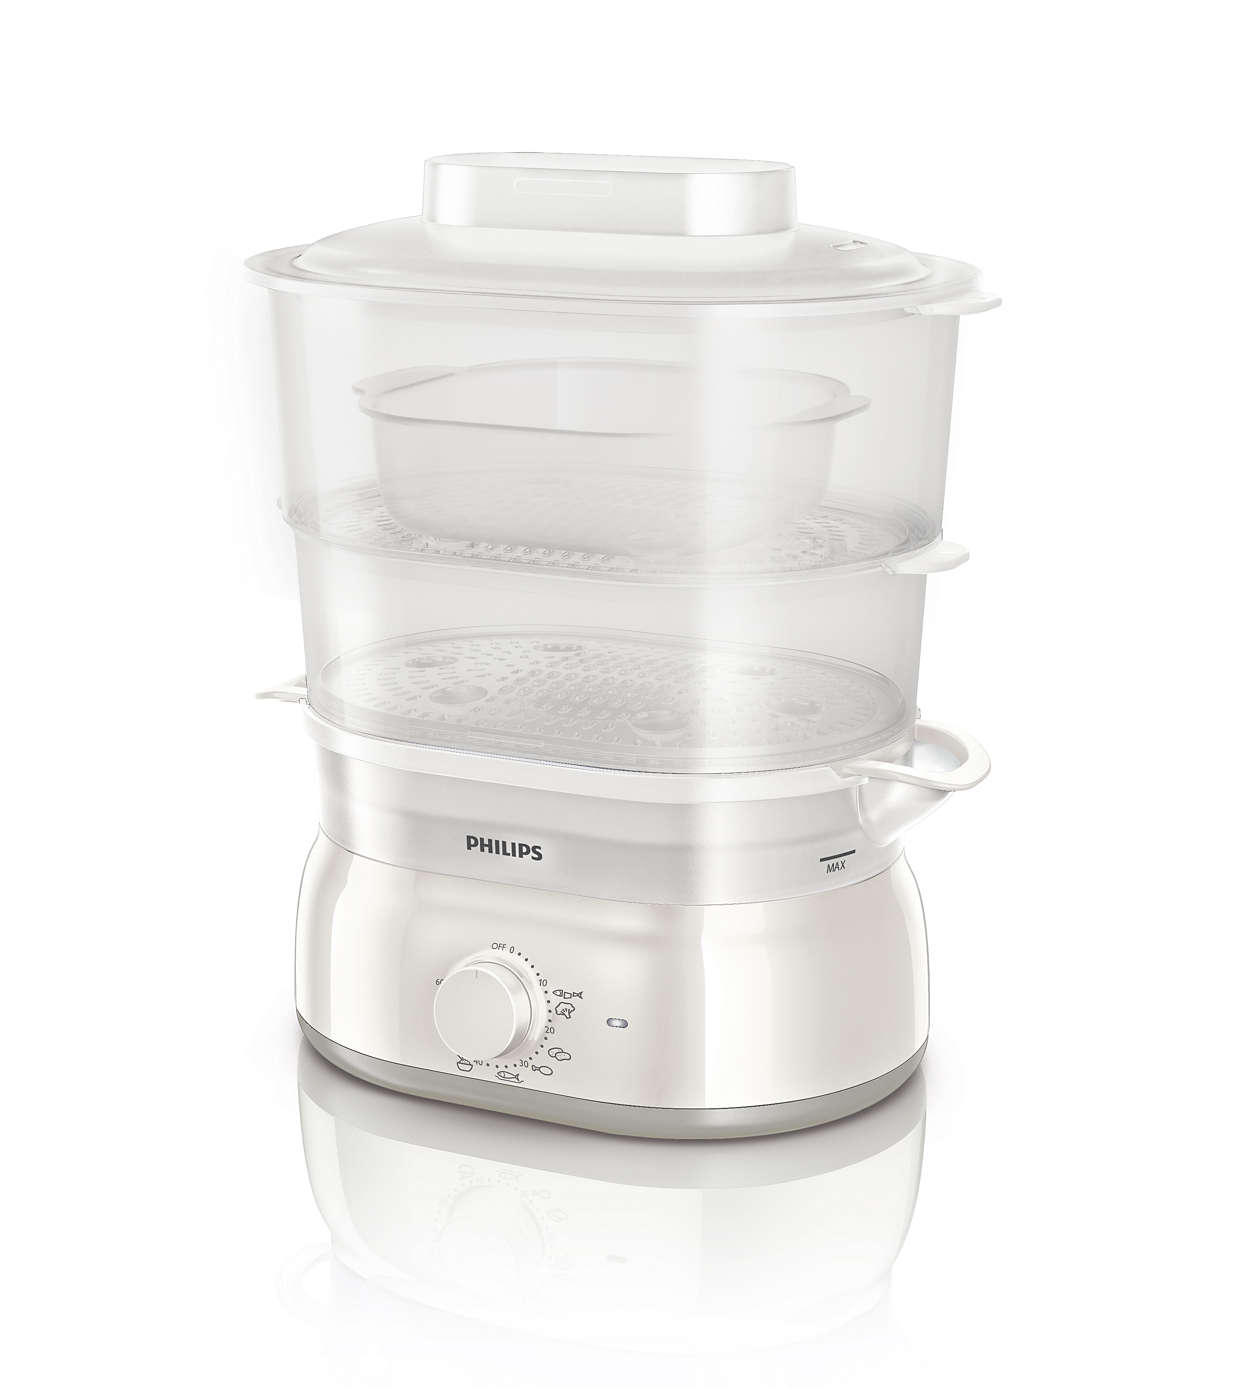 Daily collection cuiseur vapeur hd9115 20 philips - Cuisson vapeur multicuiseur philips ...